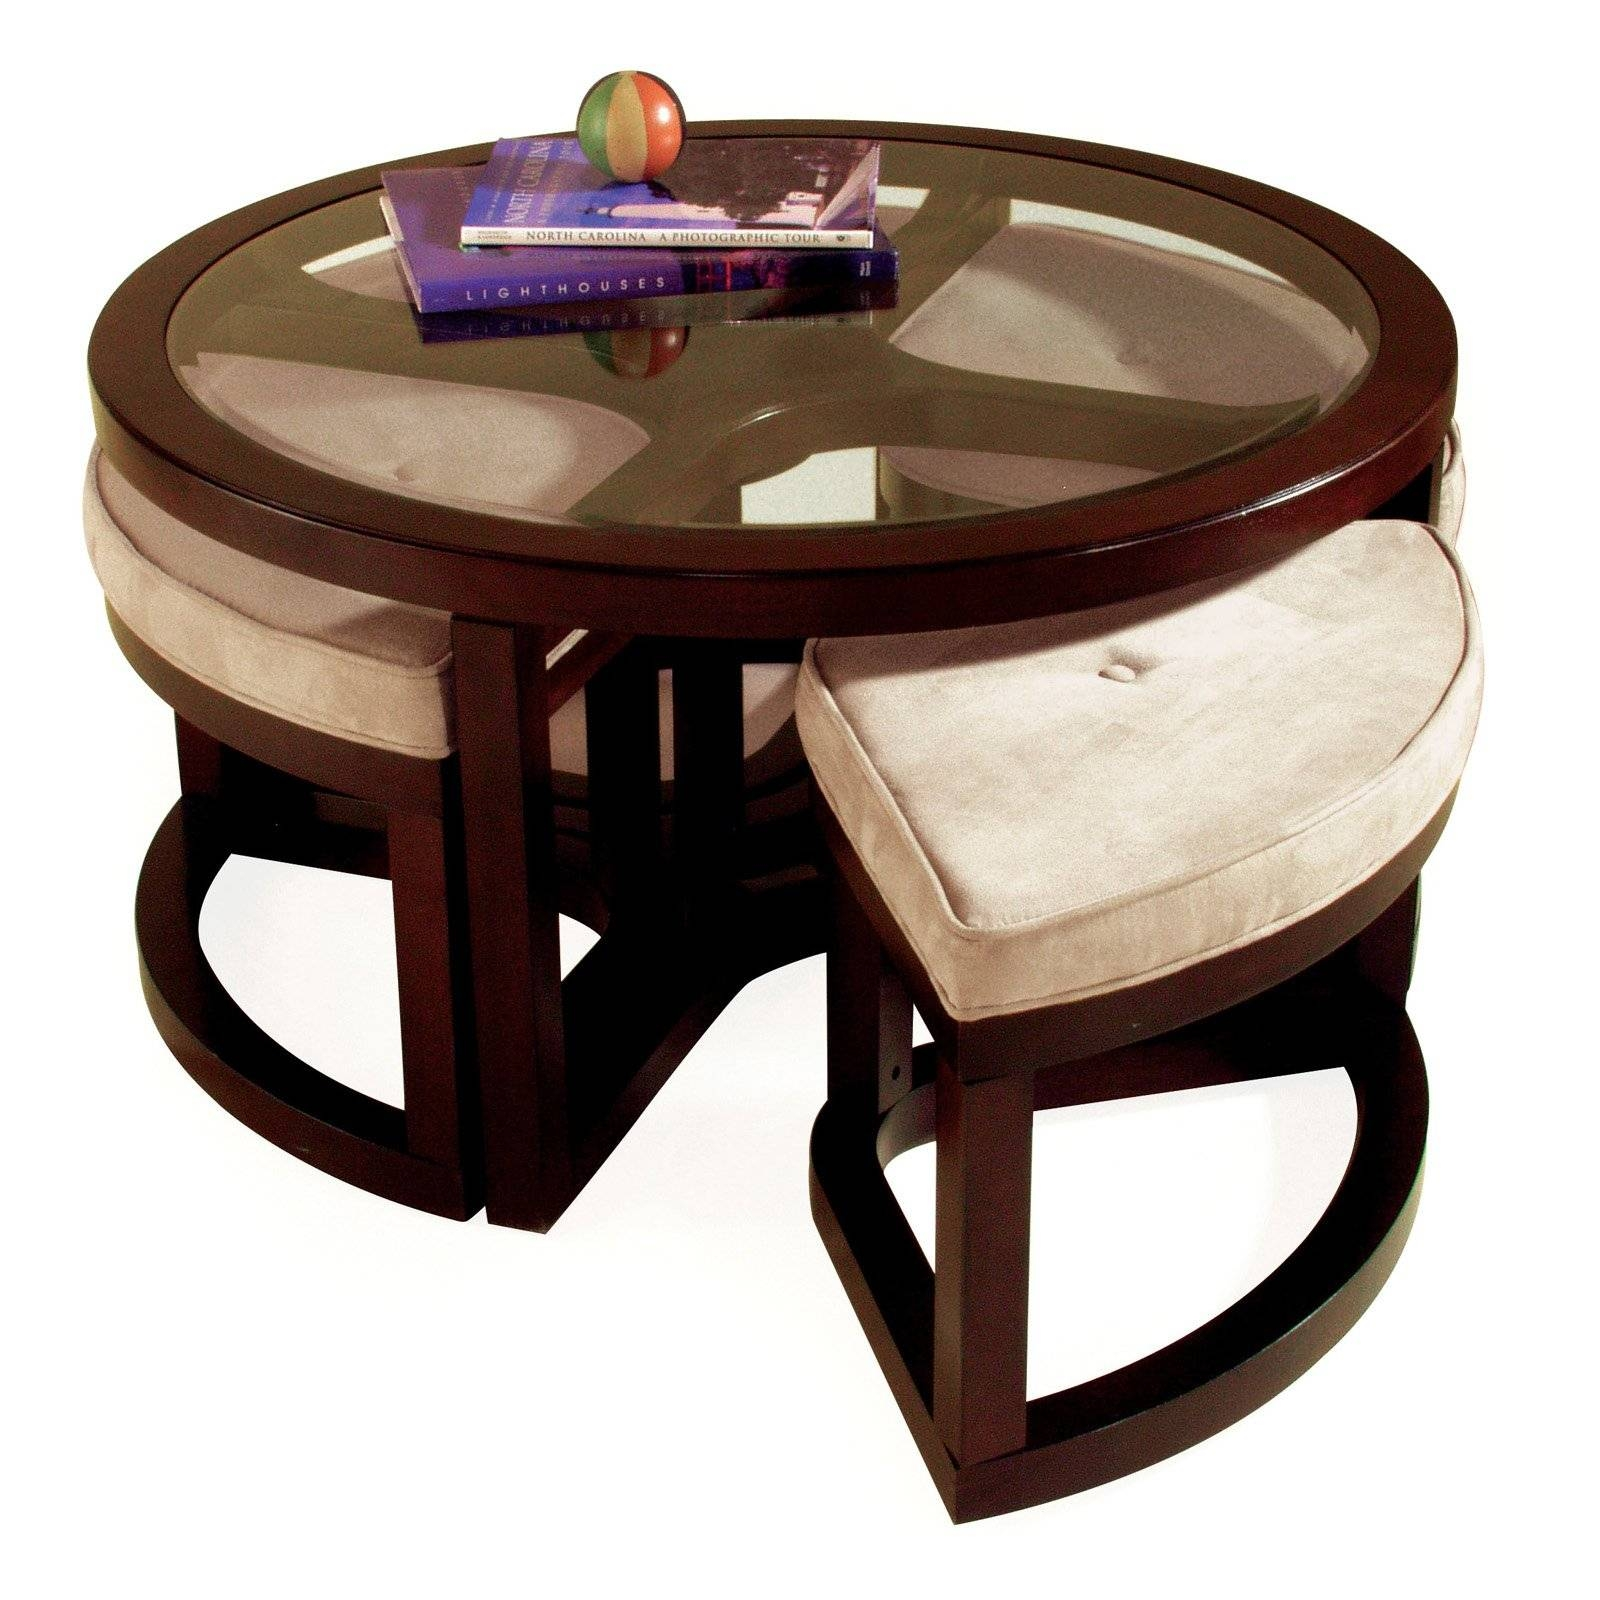 Amazing Round Coffee Table With Chairs For Home Decoration Ideas with regard to Coffee Table With Chairs (Image 3 of 30)